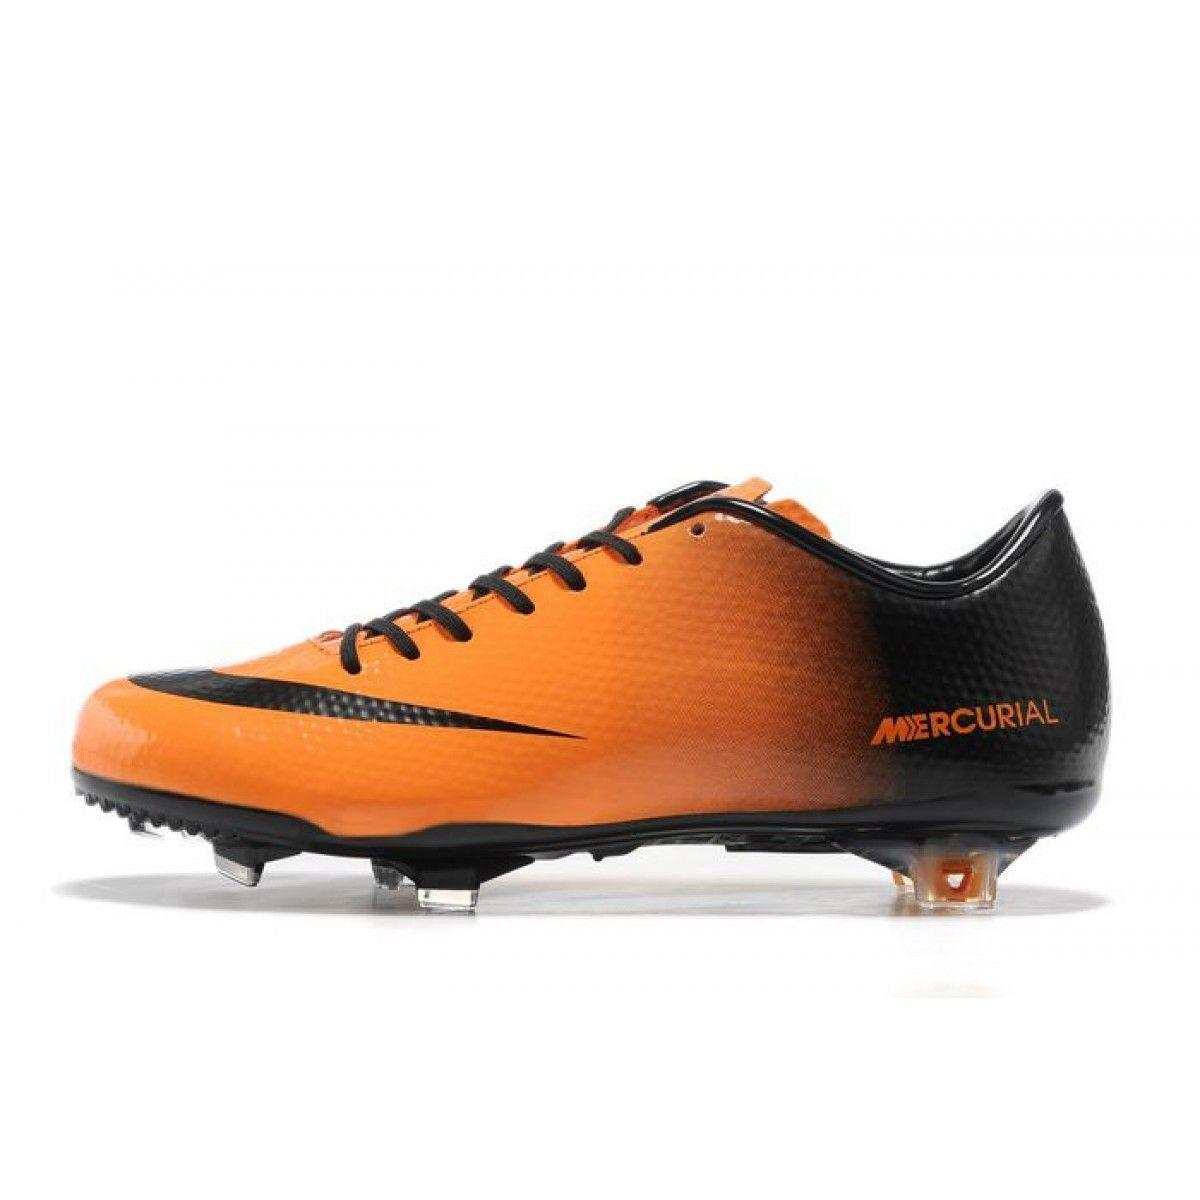 football shoes clipart - photo #18